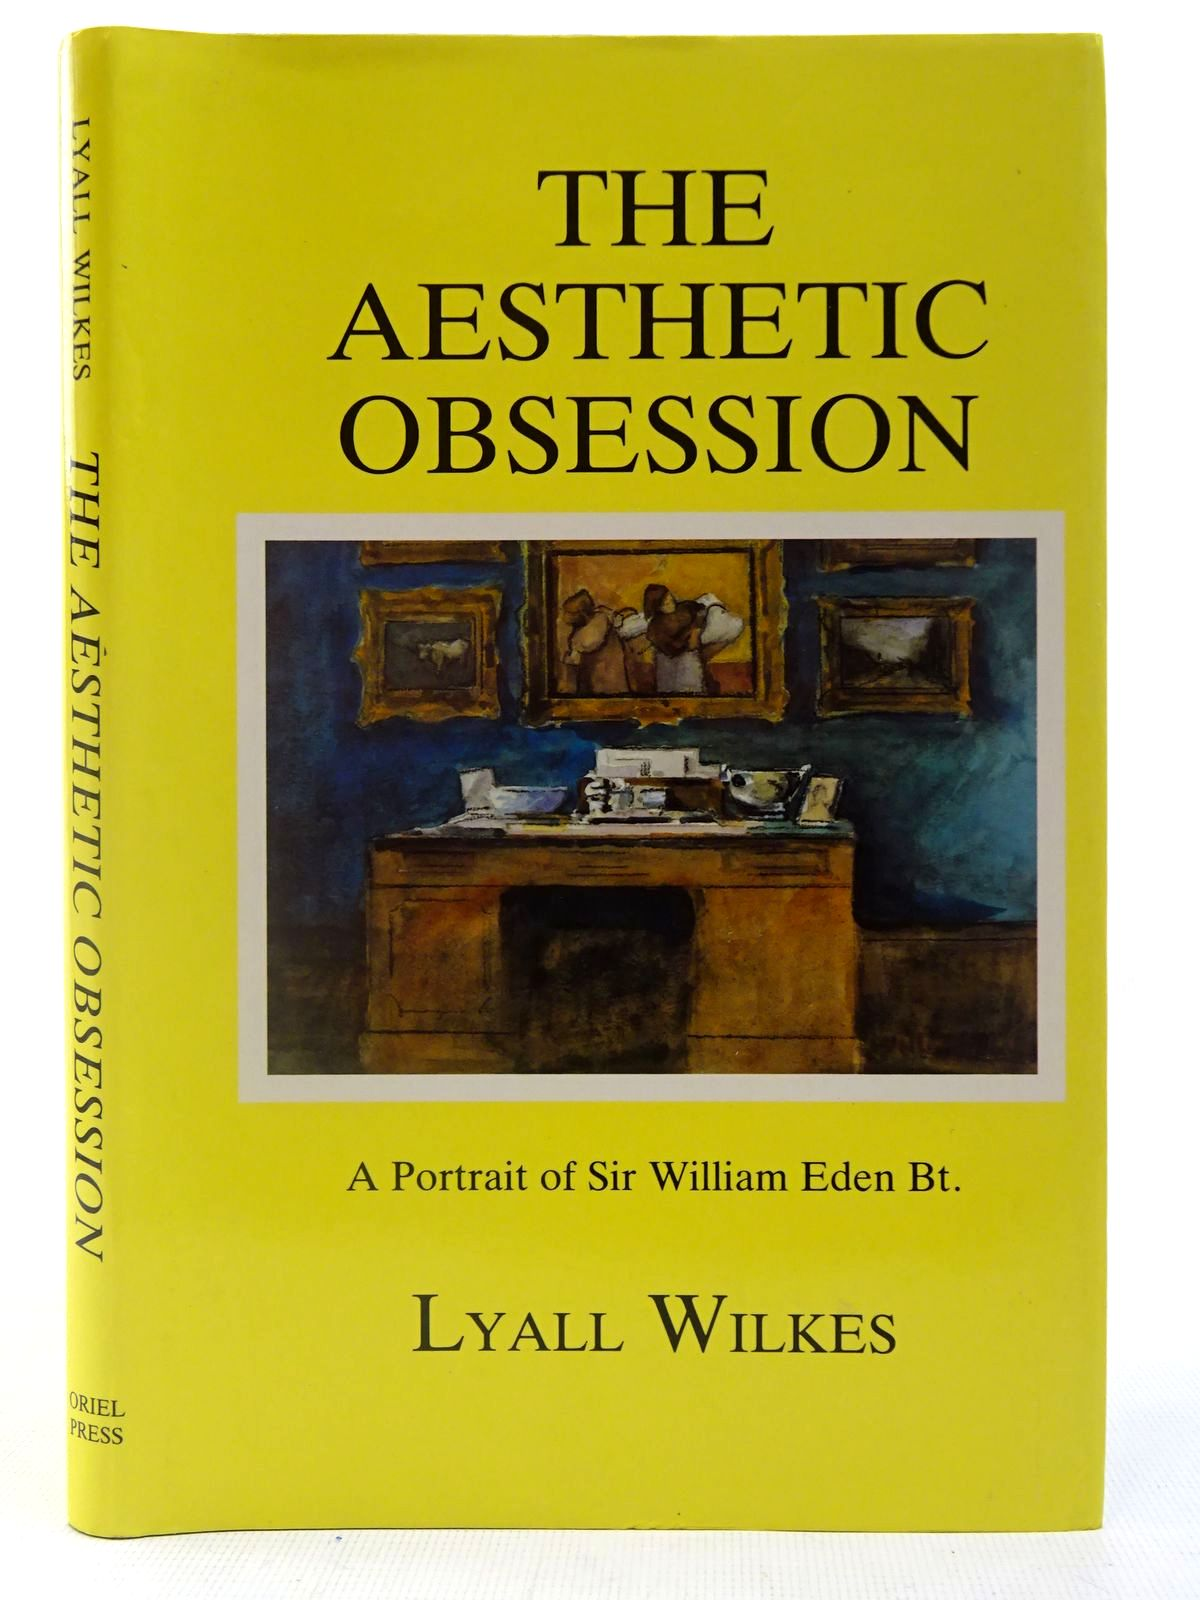 Photo of THE AESTHETIC OBSESSION A PORTRAIT OF SIR WILLIAM EDEN BT. written by Wilkes, Lyall published by Oriel Press (STOCK CODE: 2127114)  for sale by Stella & Rose's Books